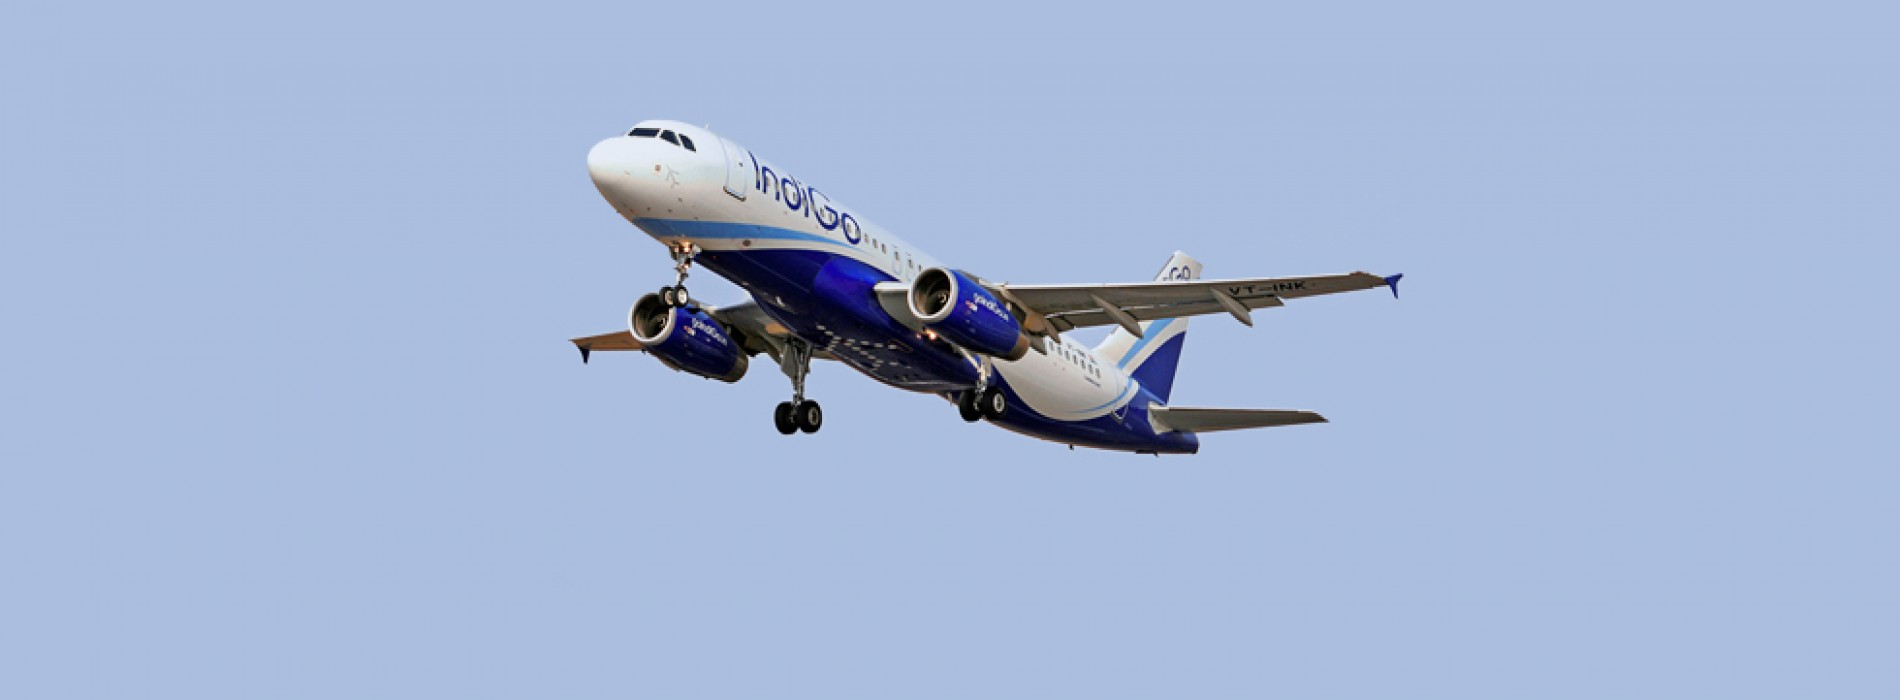 IndiGo strengthens domestic connectivity with the launch of Vijayawada as its 50th destination